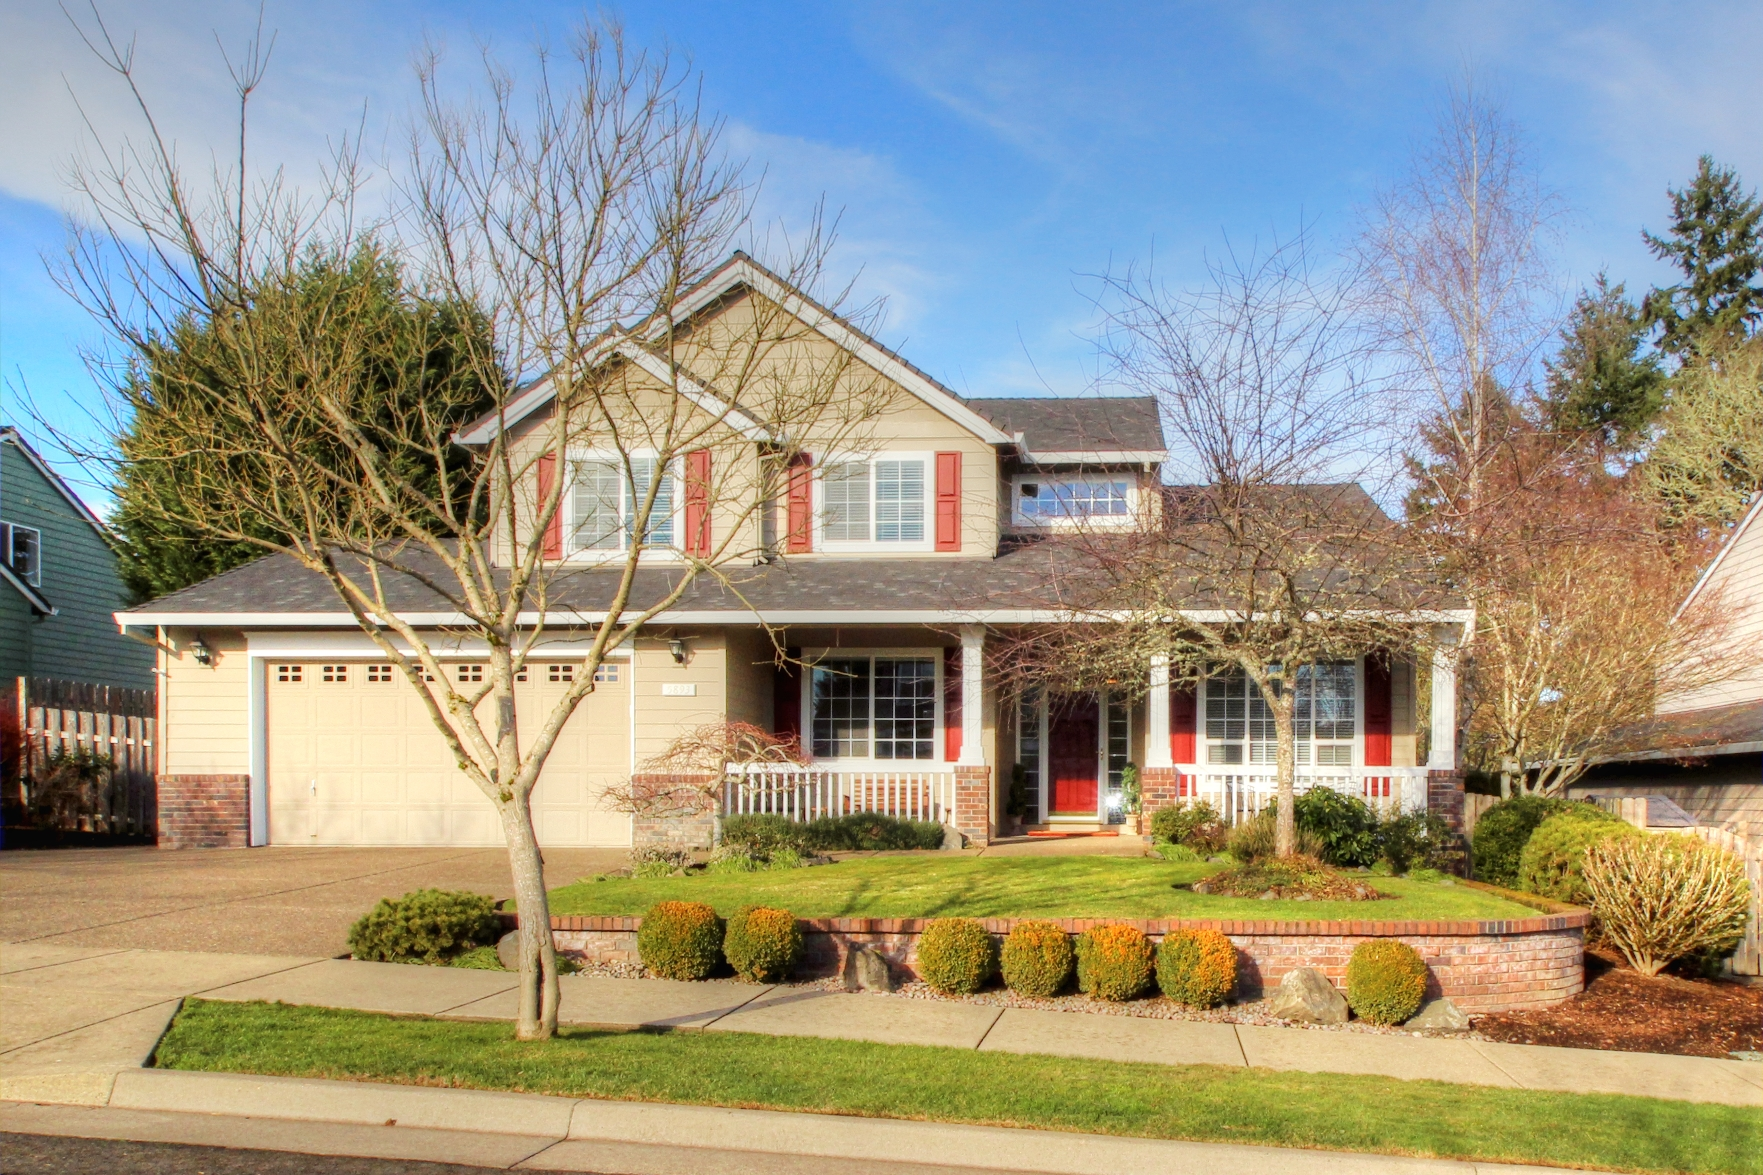 Gorgeous Southwest Corvallis Home For Sale: 5893 SW Englewood Avenue, Corvallis OR 97333